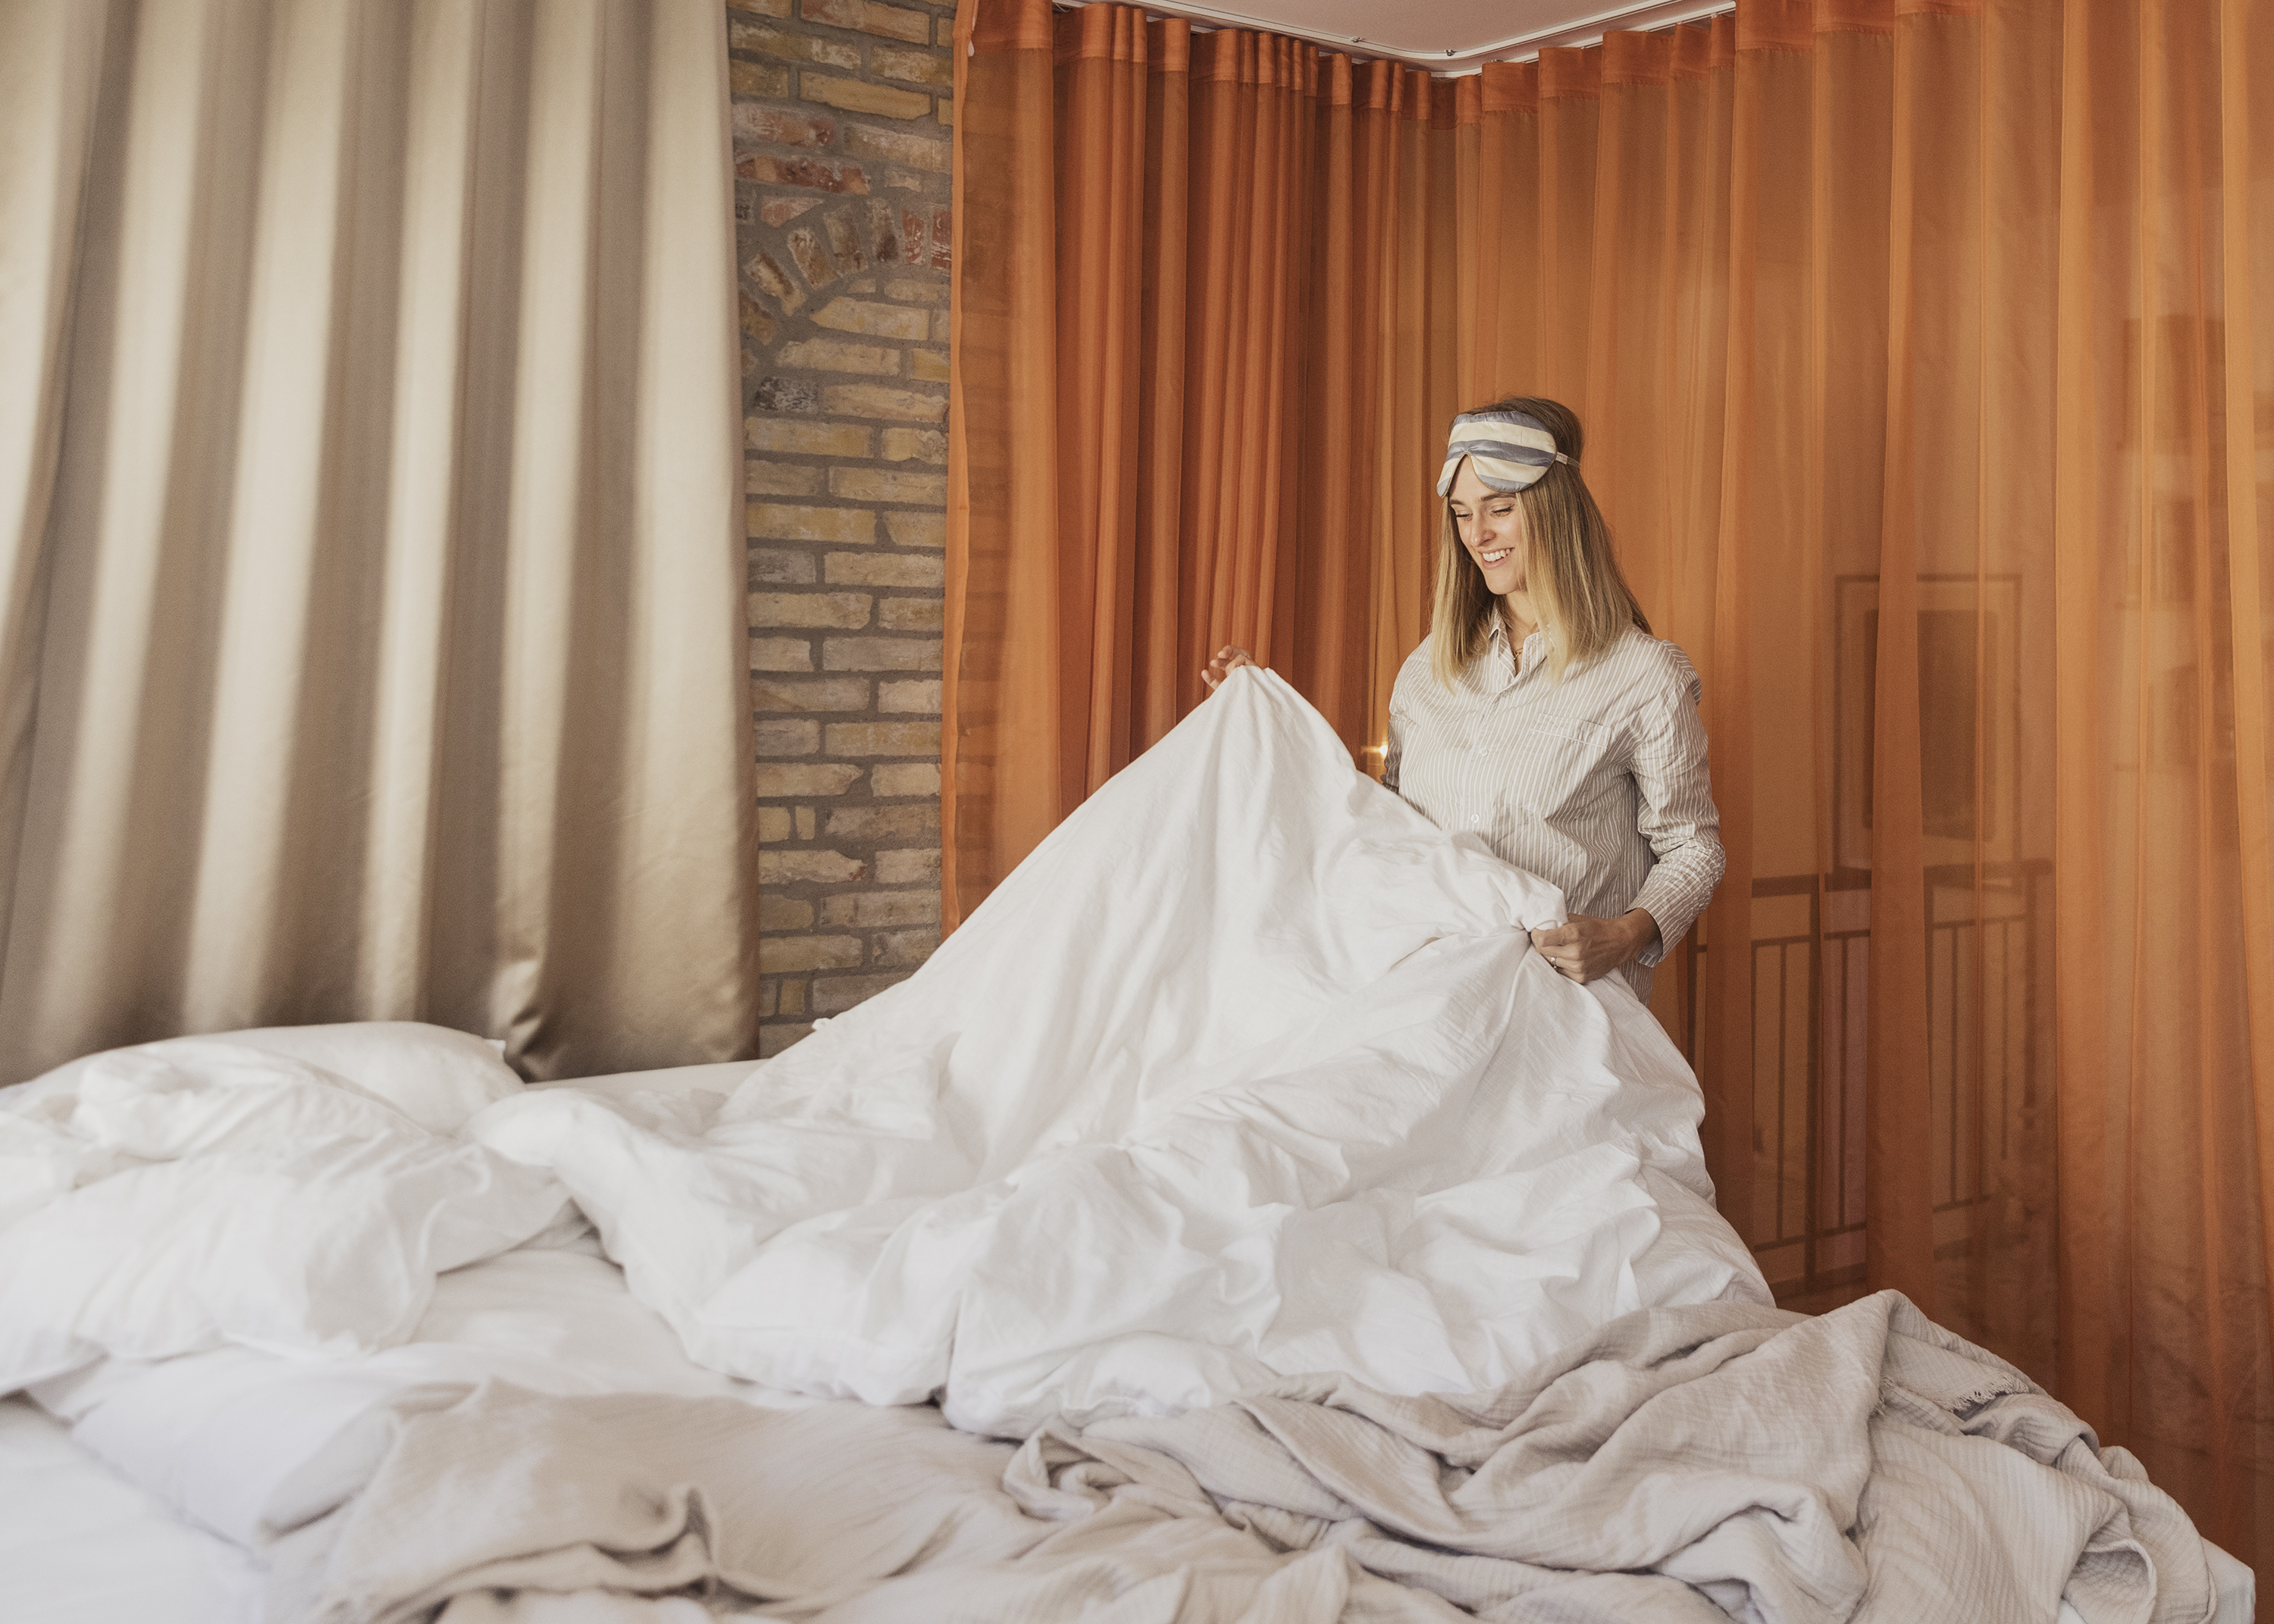 Rockpaperdresses, Cathrine Widunok Wichmand, Auping, Alona Vibe